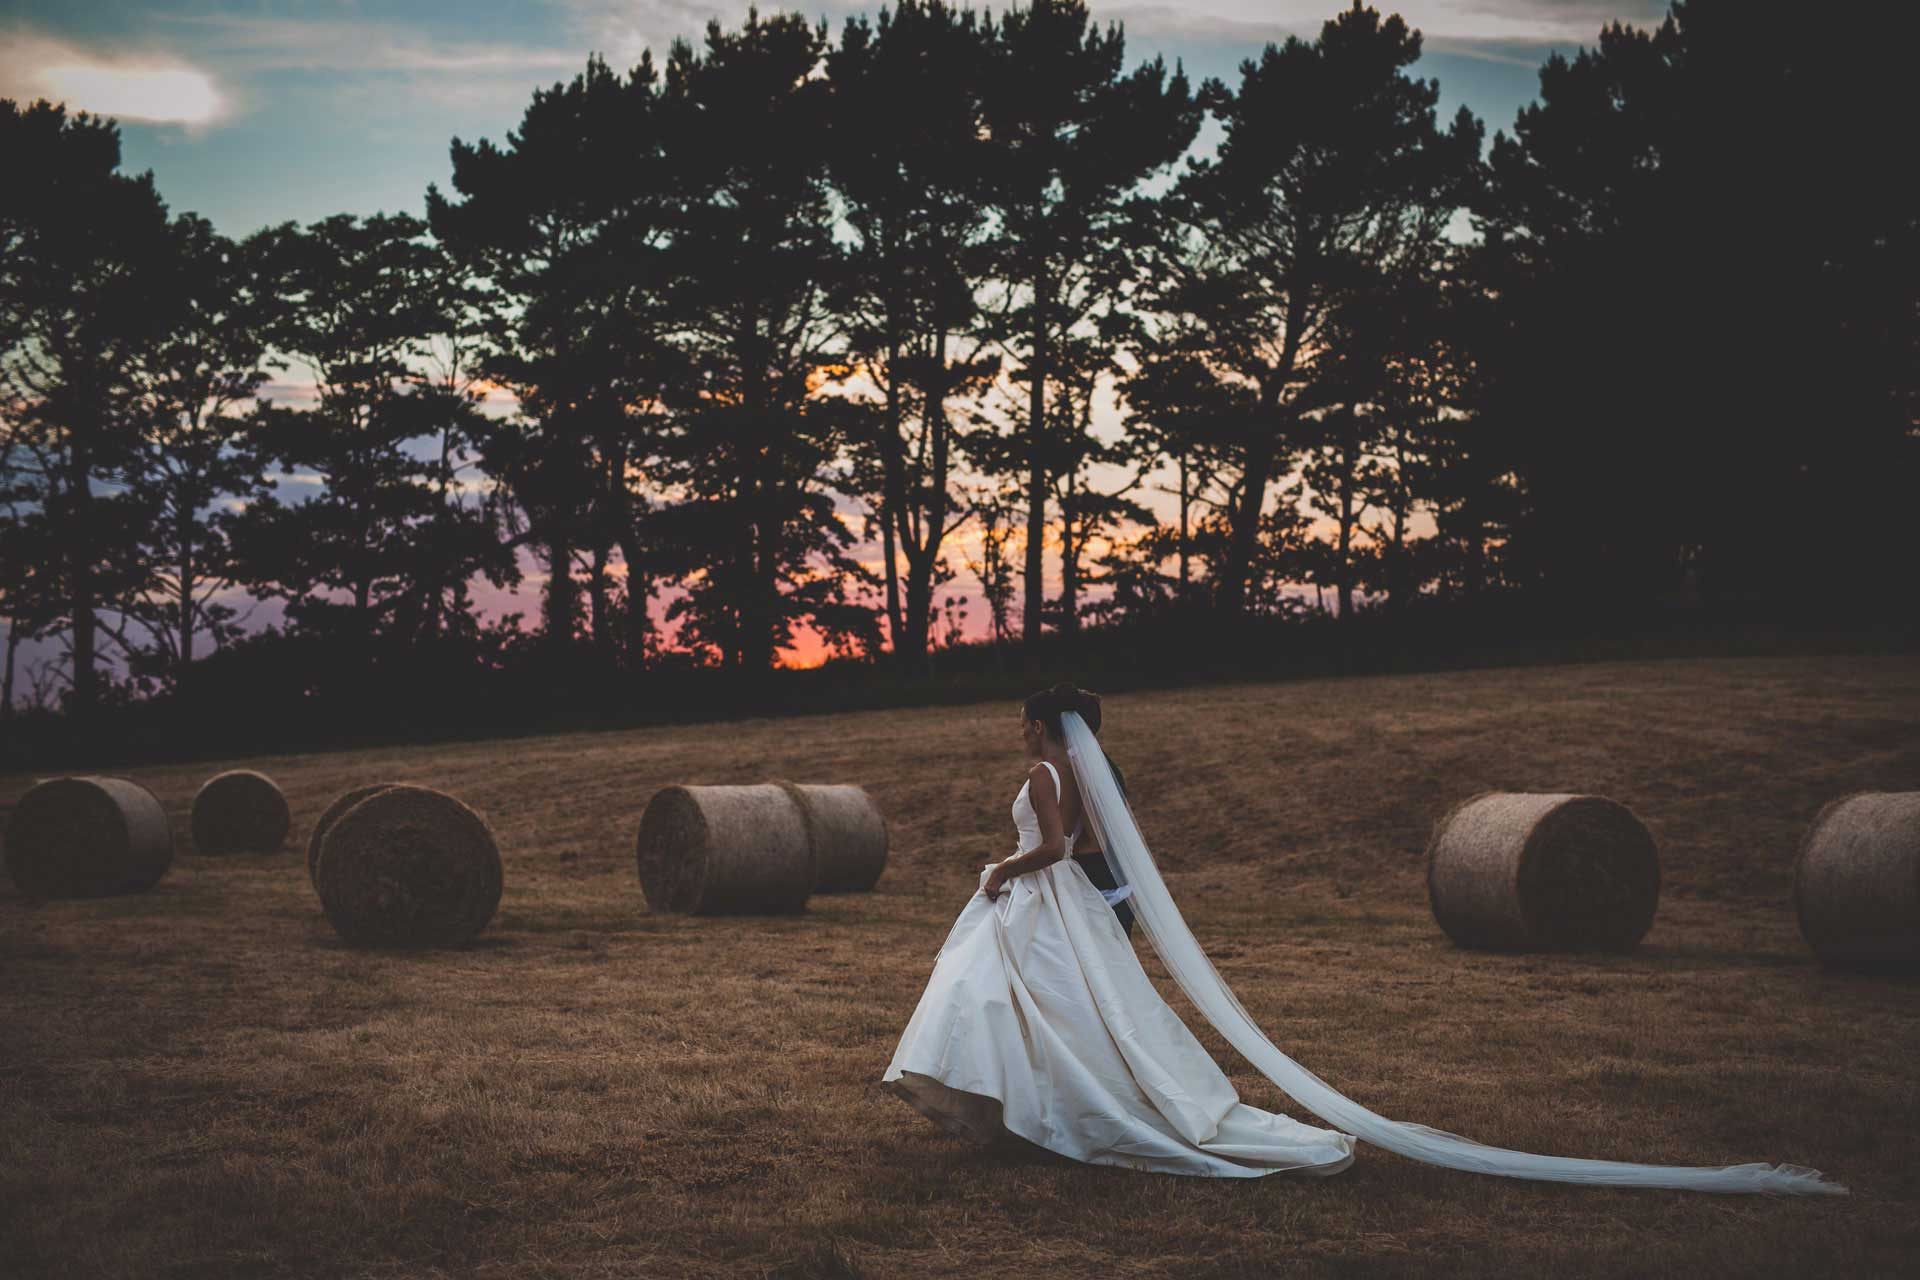 Wedding-sunset-photographers-hay-bail-feild-classic-wedding-dress